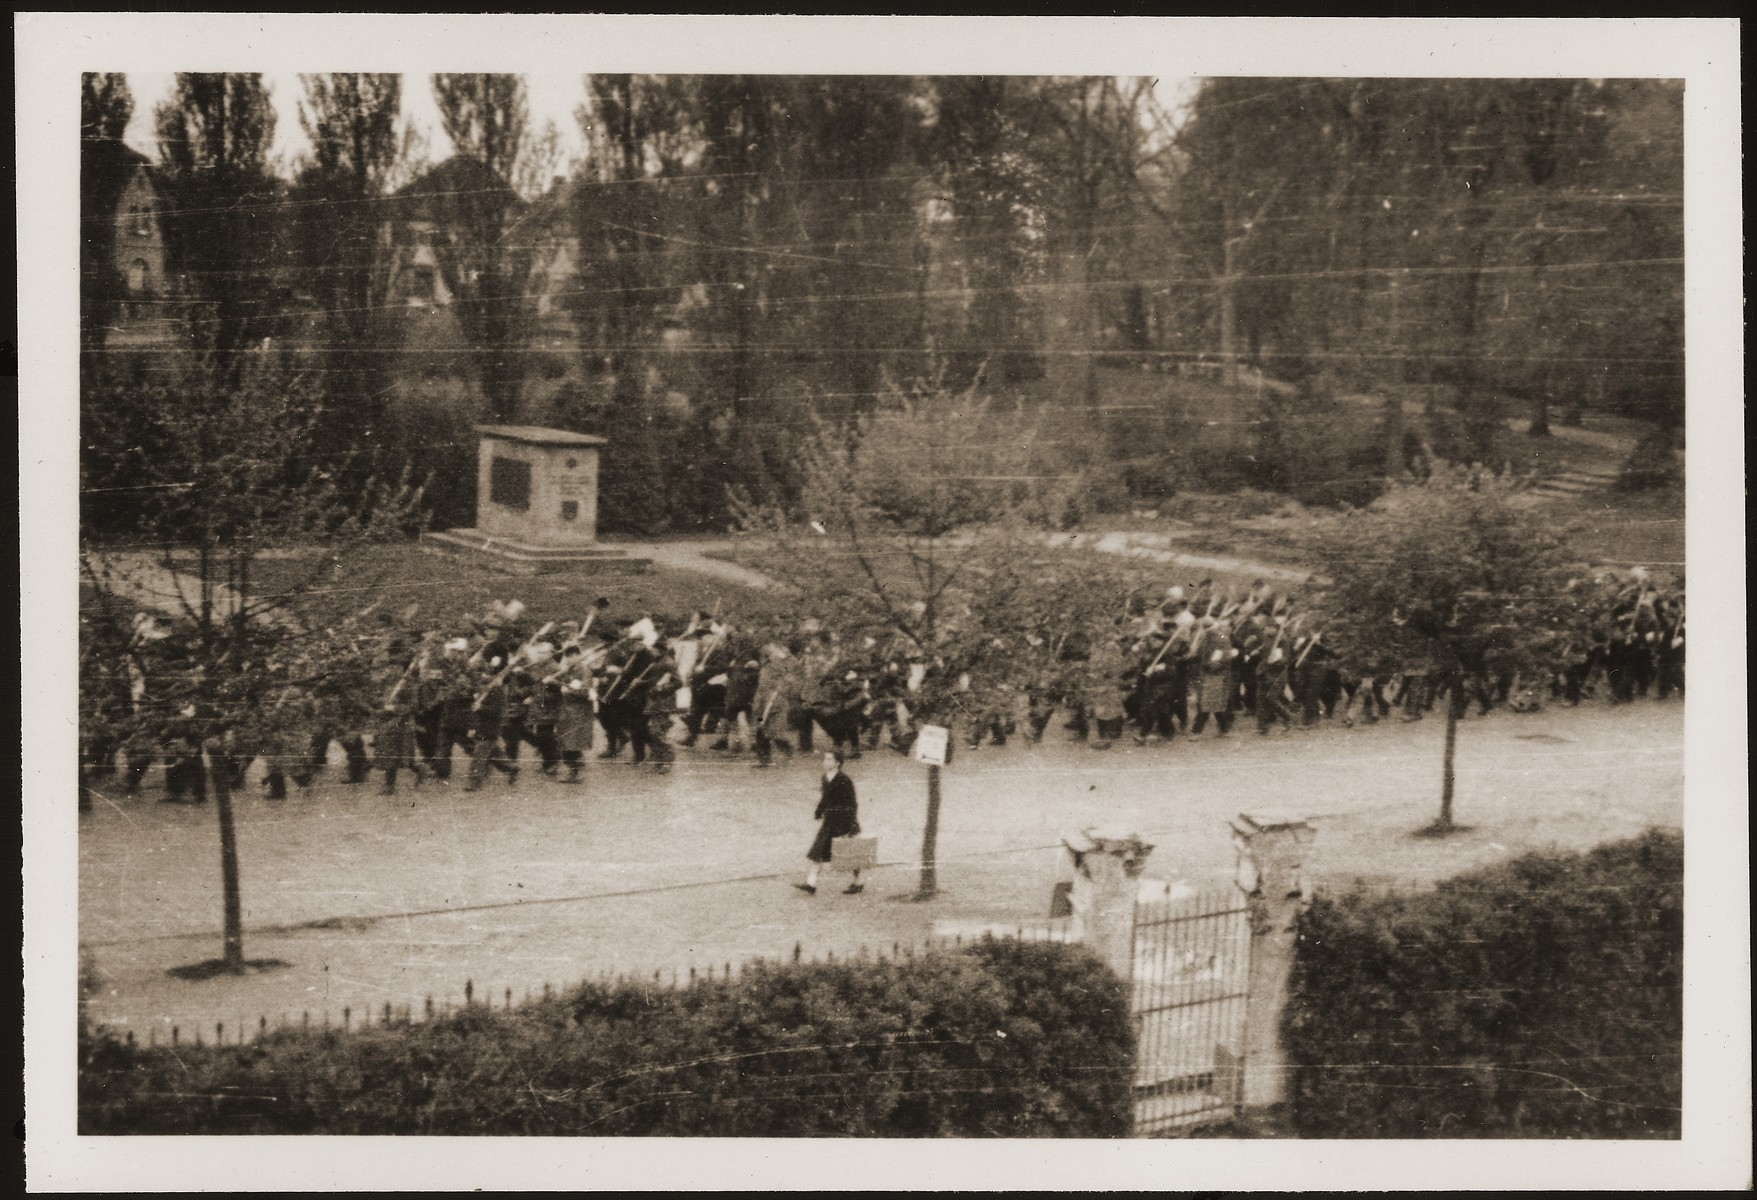 German civilians from Gardelegen march with shovels in hand to a barn just outside the town, where they will dig graves for prisoners killed by the SS inside the barn.